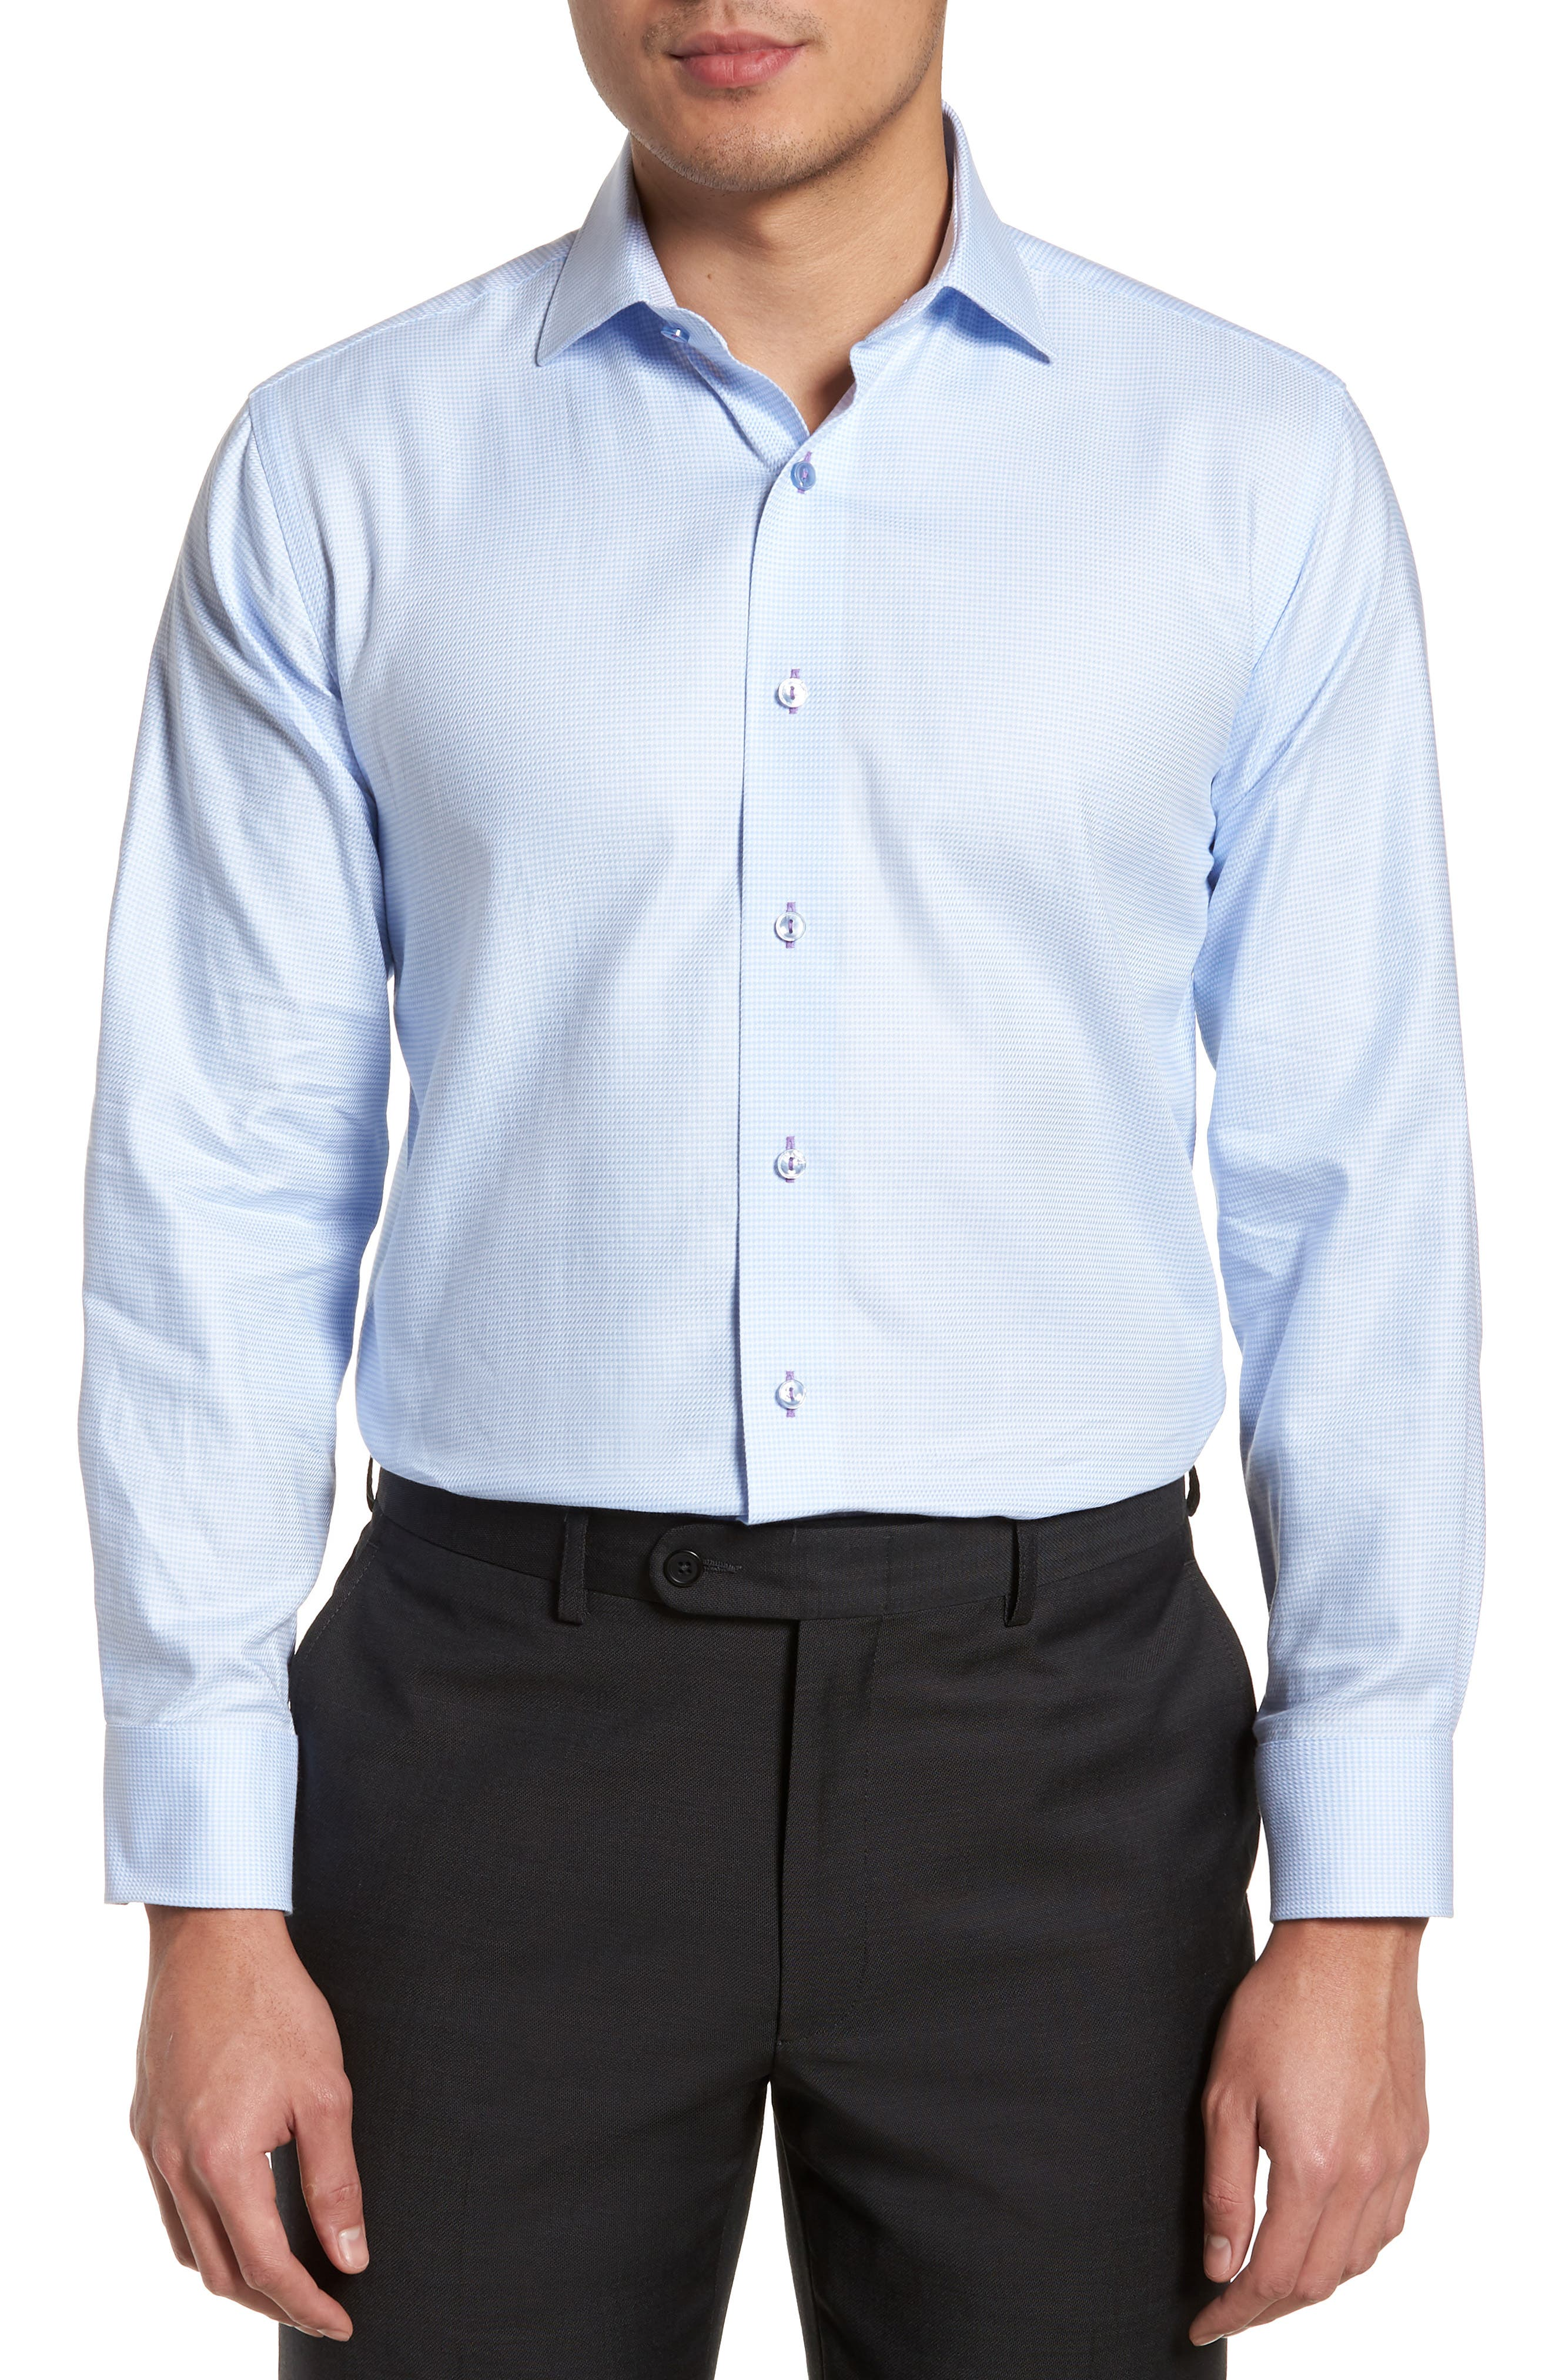 LORENZO UOMO Trim Fit Houndstooth Dress Shirt, Main, color, 450